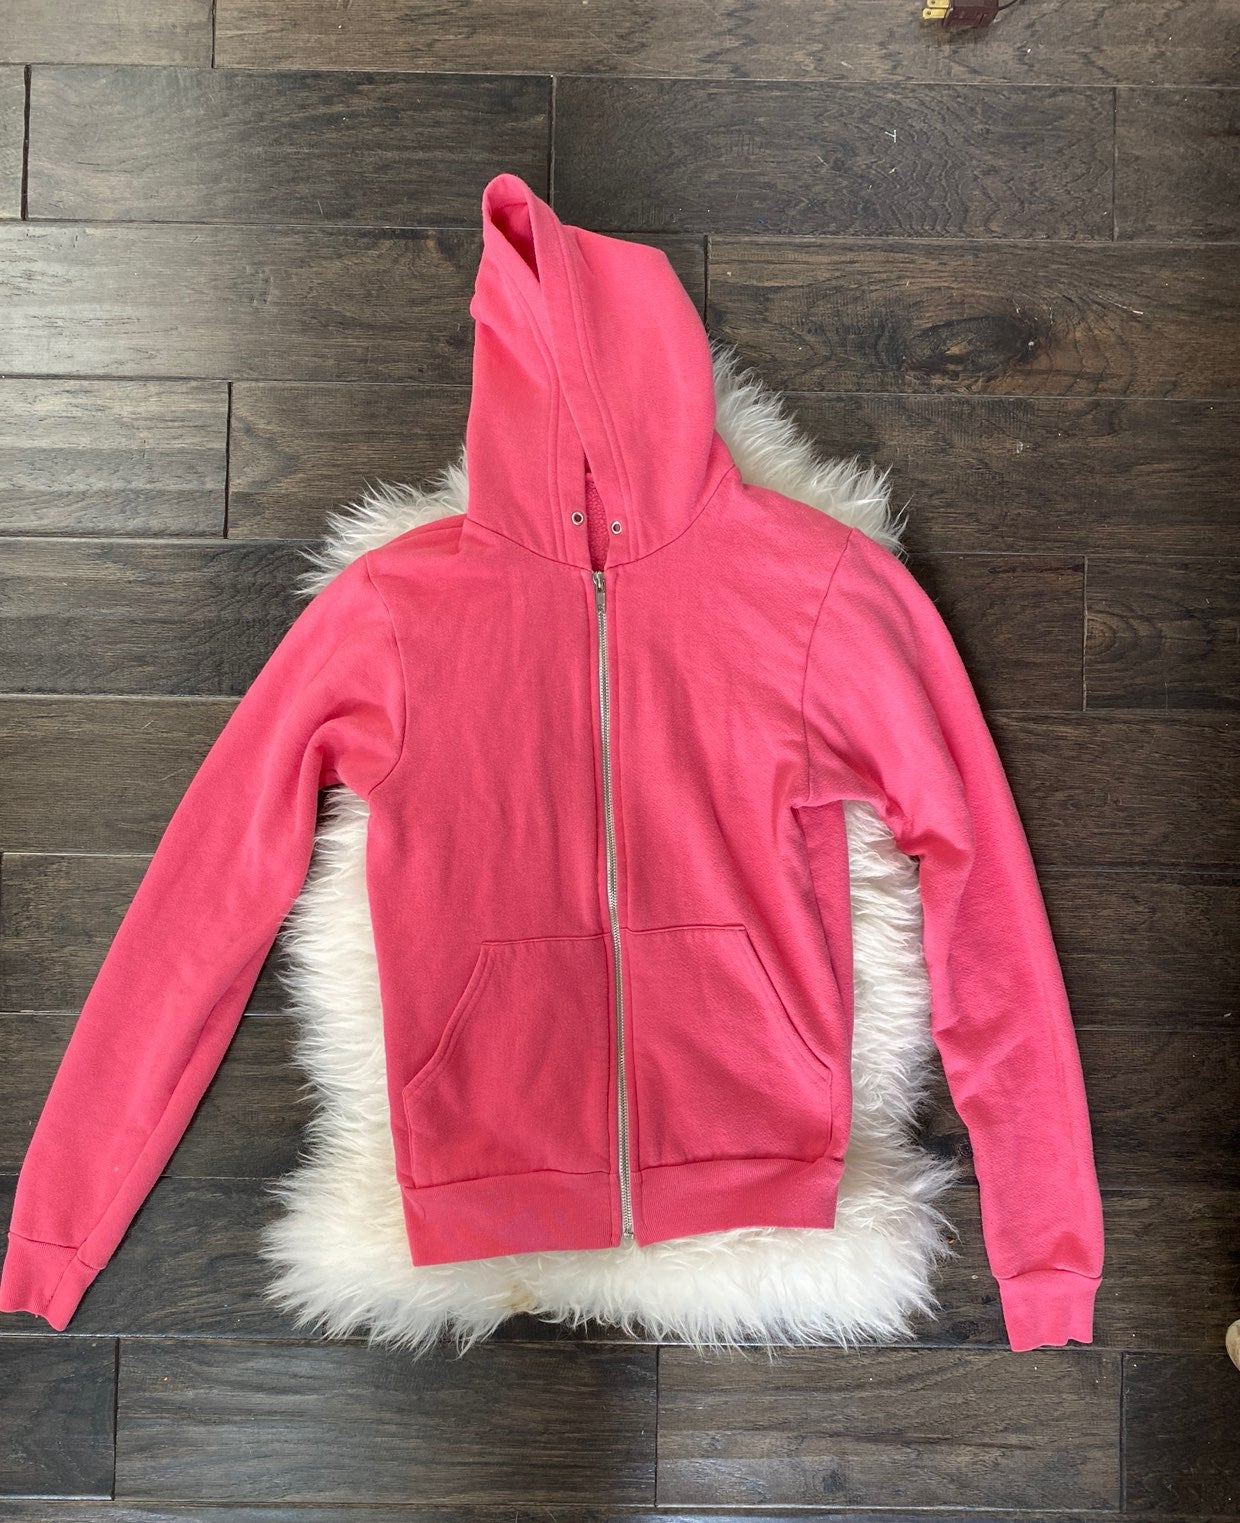 American Apparel Pink Zip Up Hoodie